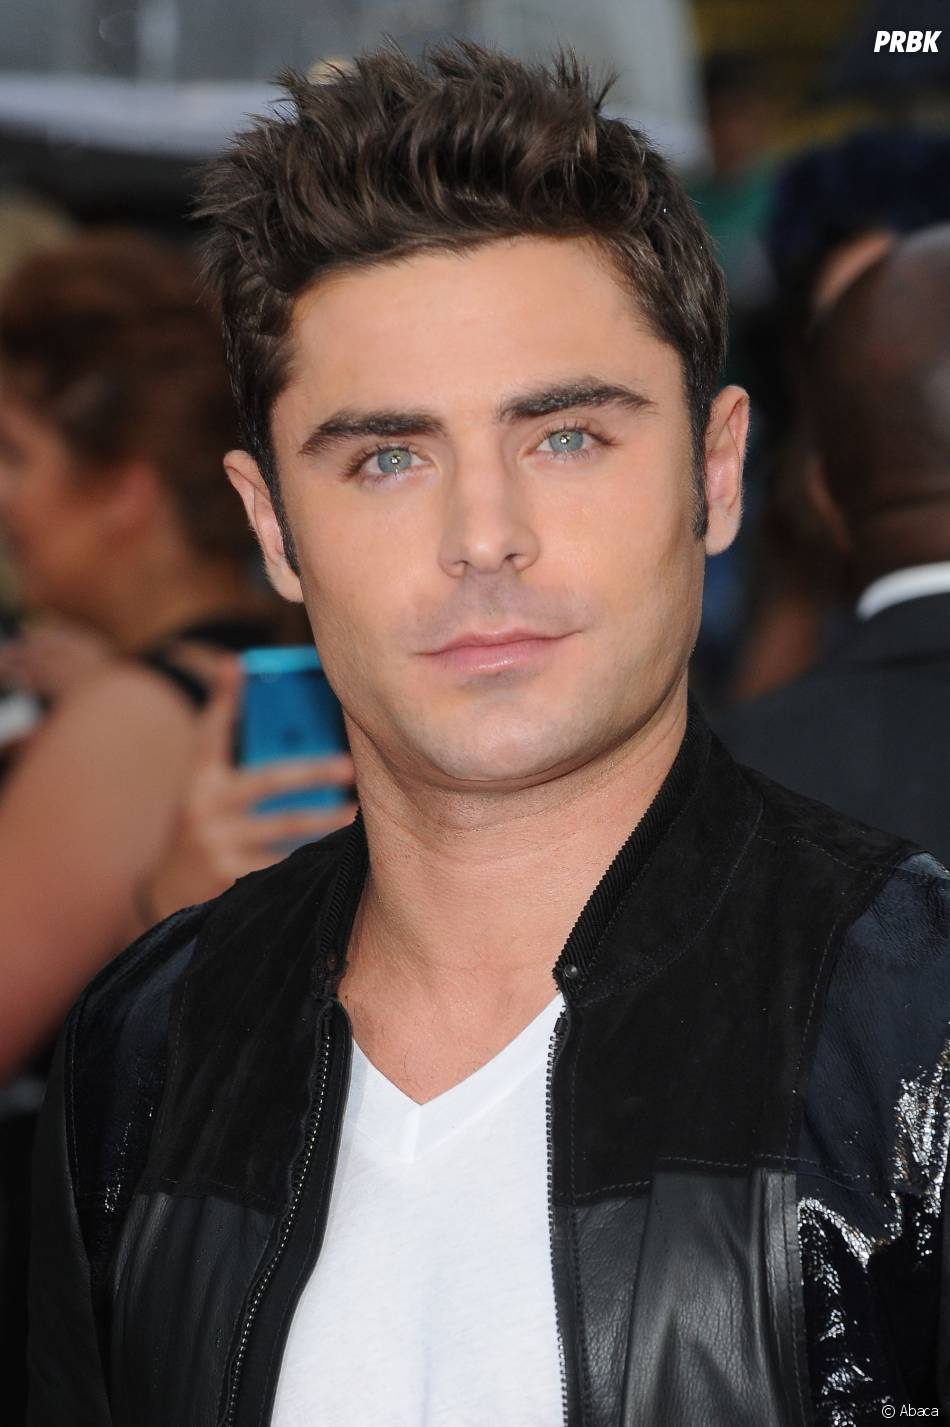 Zac Efron sur le tapis rouge de l'avant-première du film We Are Your Friends à Londres, le 11 août 2015